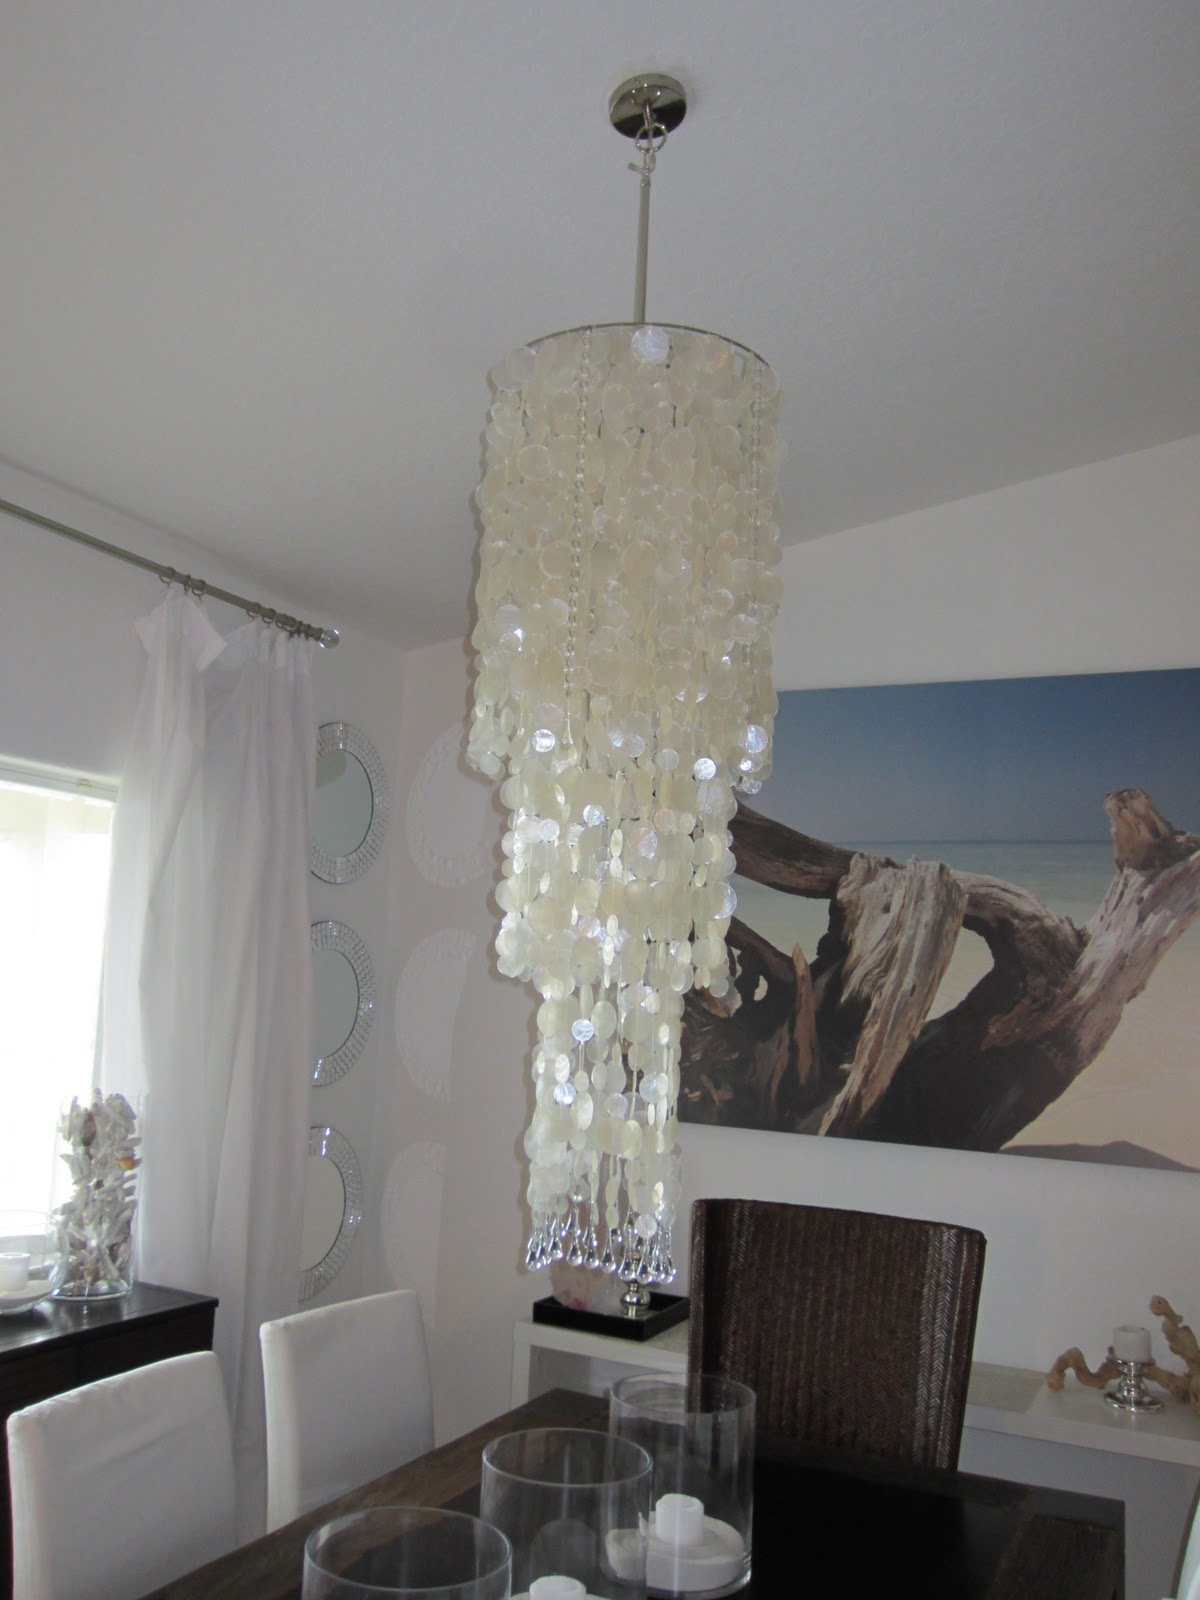 As These Things Tend To Go Ive Figured Out That My Capiz Shell Chandelier Used Hang Above Dining Room Table Seen Here Is Too Long